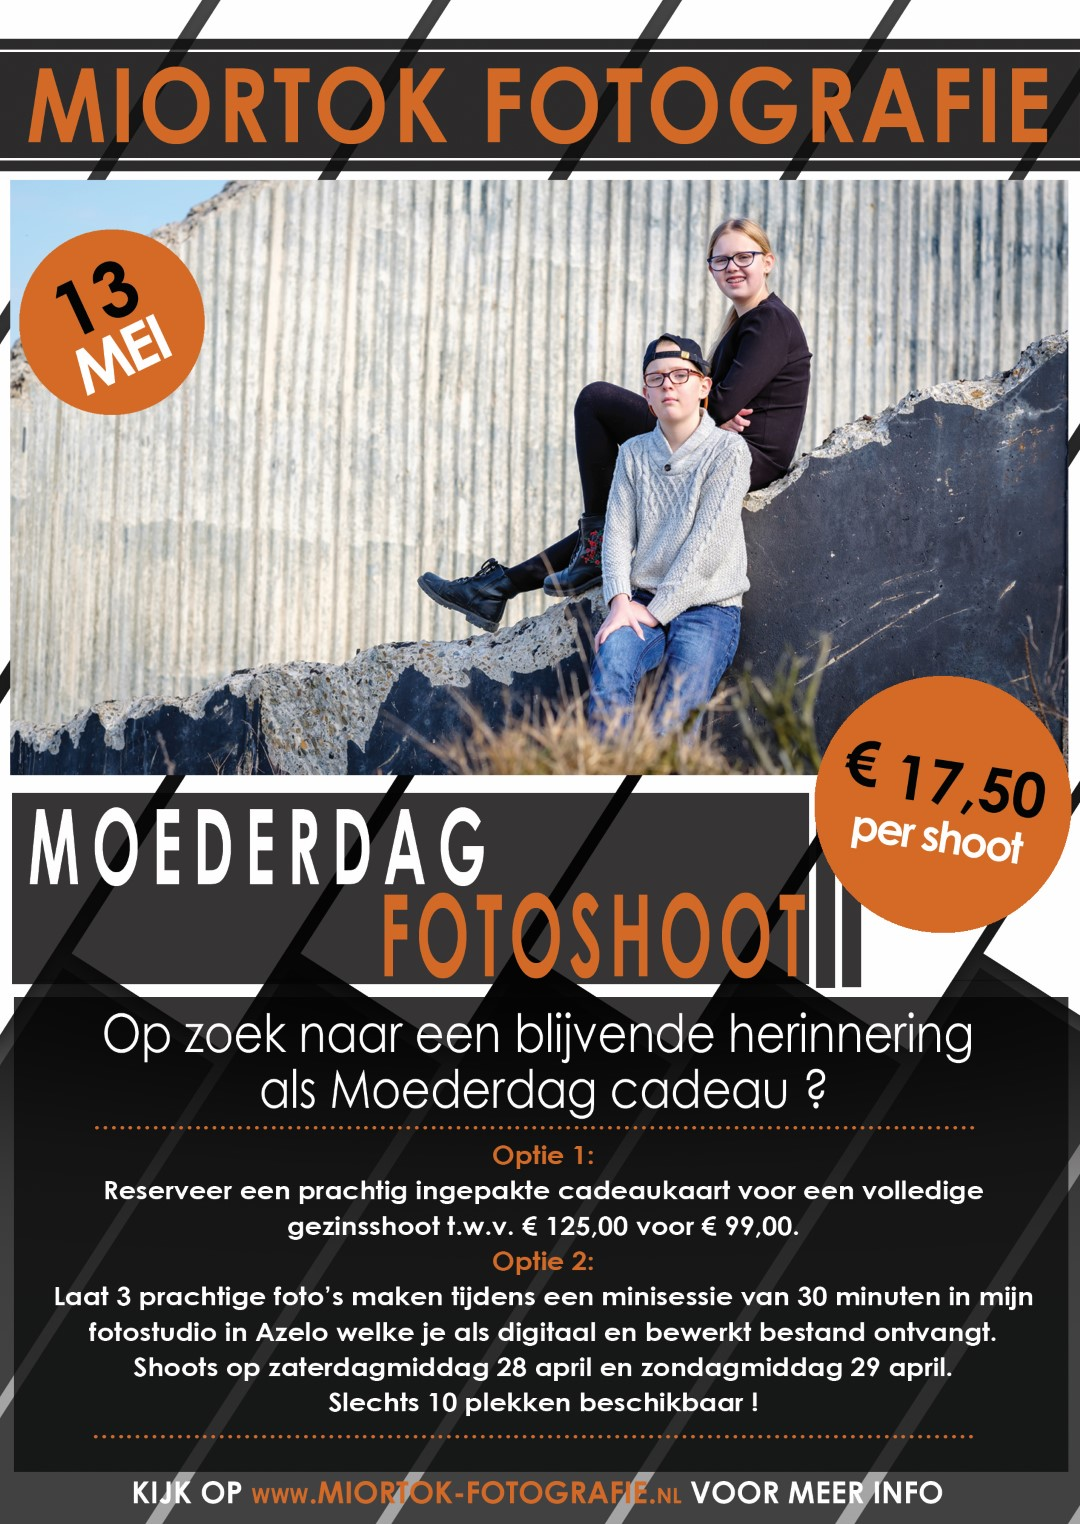 Flyer Fotoshoot Moederdag 2018